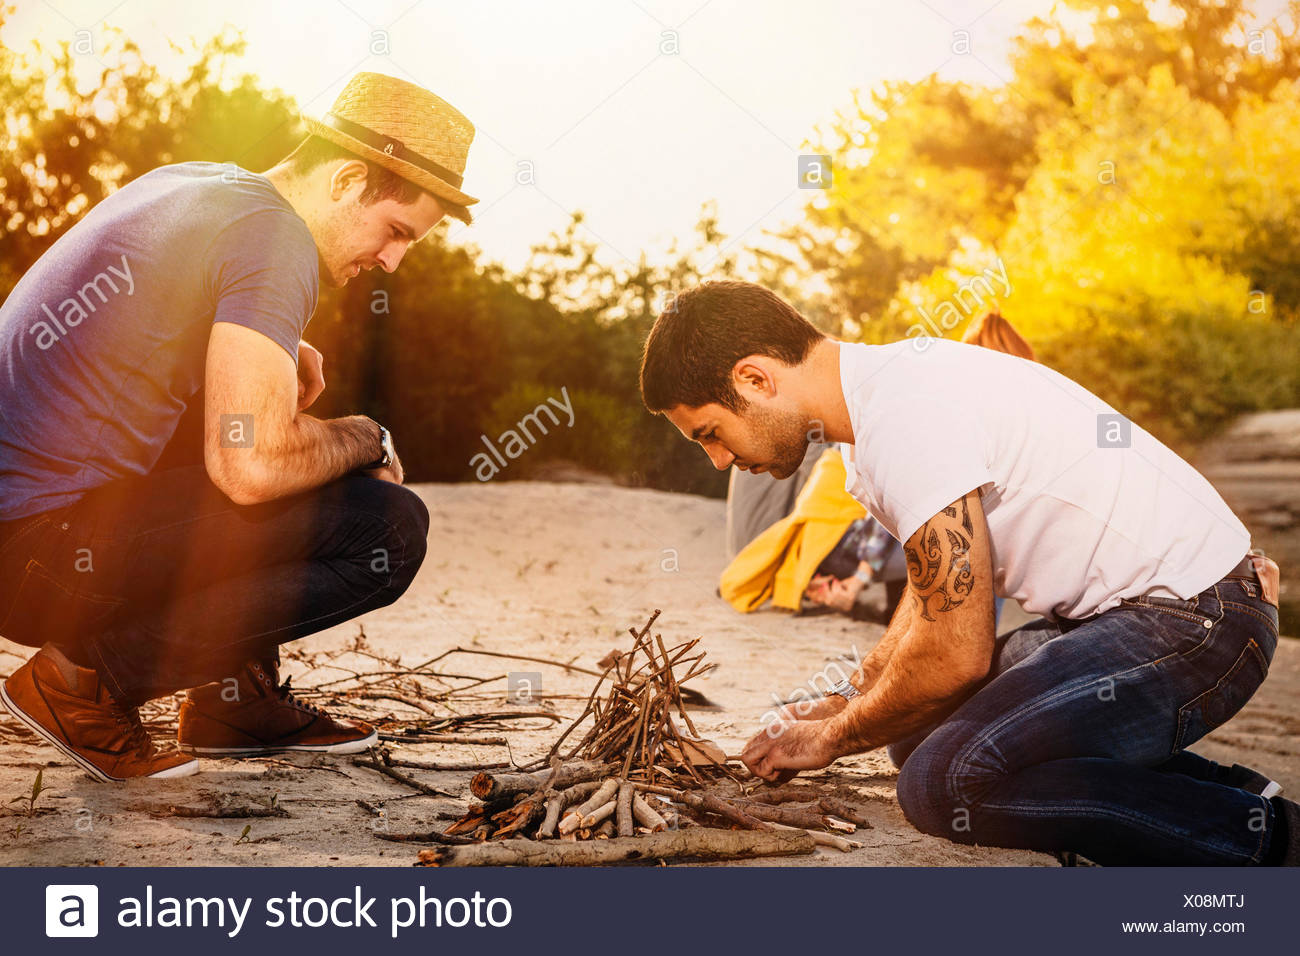 Two friends arranging firewood for a campfire,  Osijek, Croatia - Stock Image